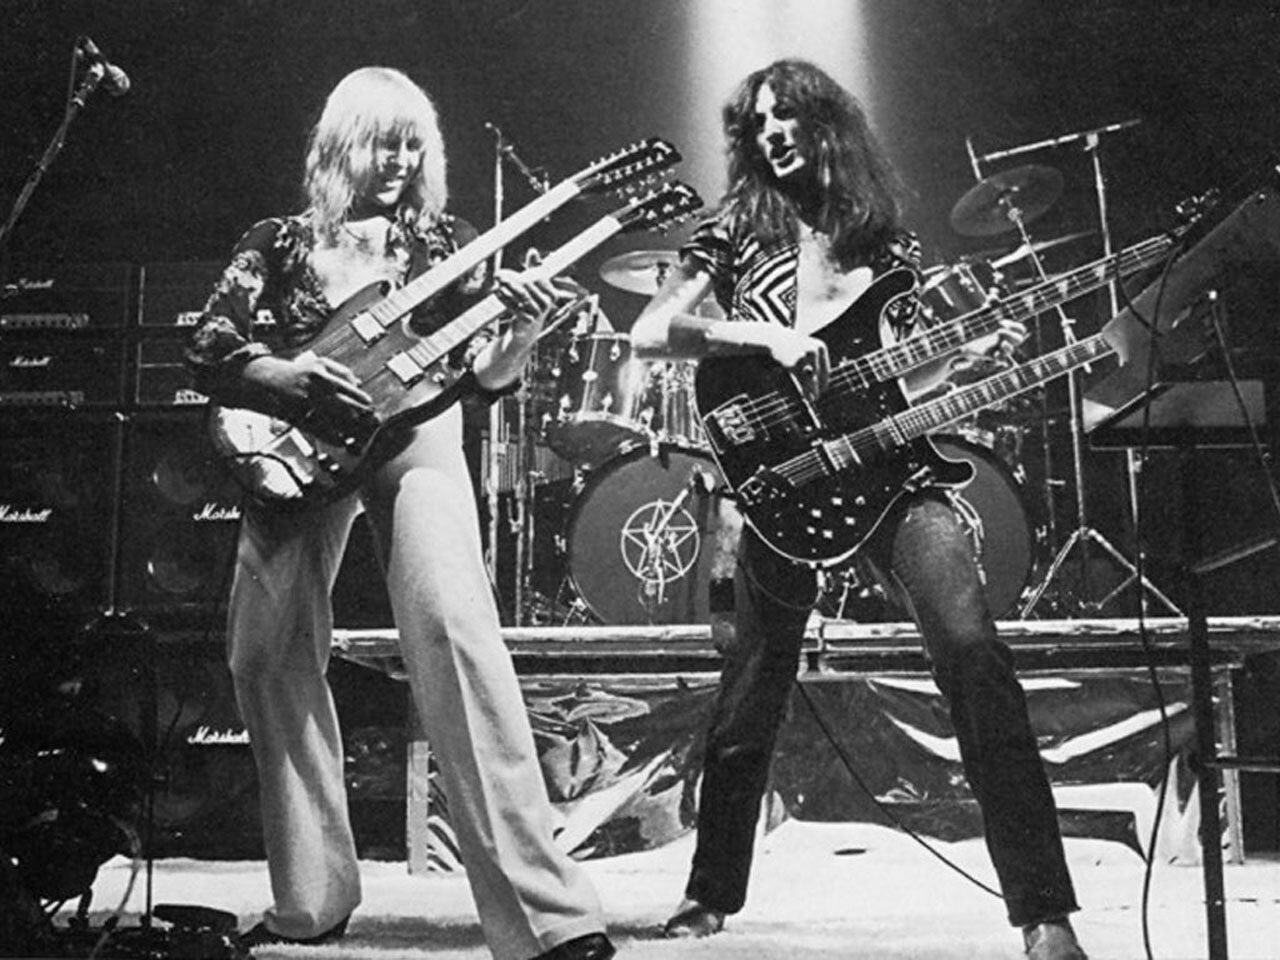 Awesome Totally Awesome - Rush 1976 live